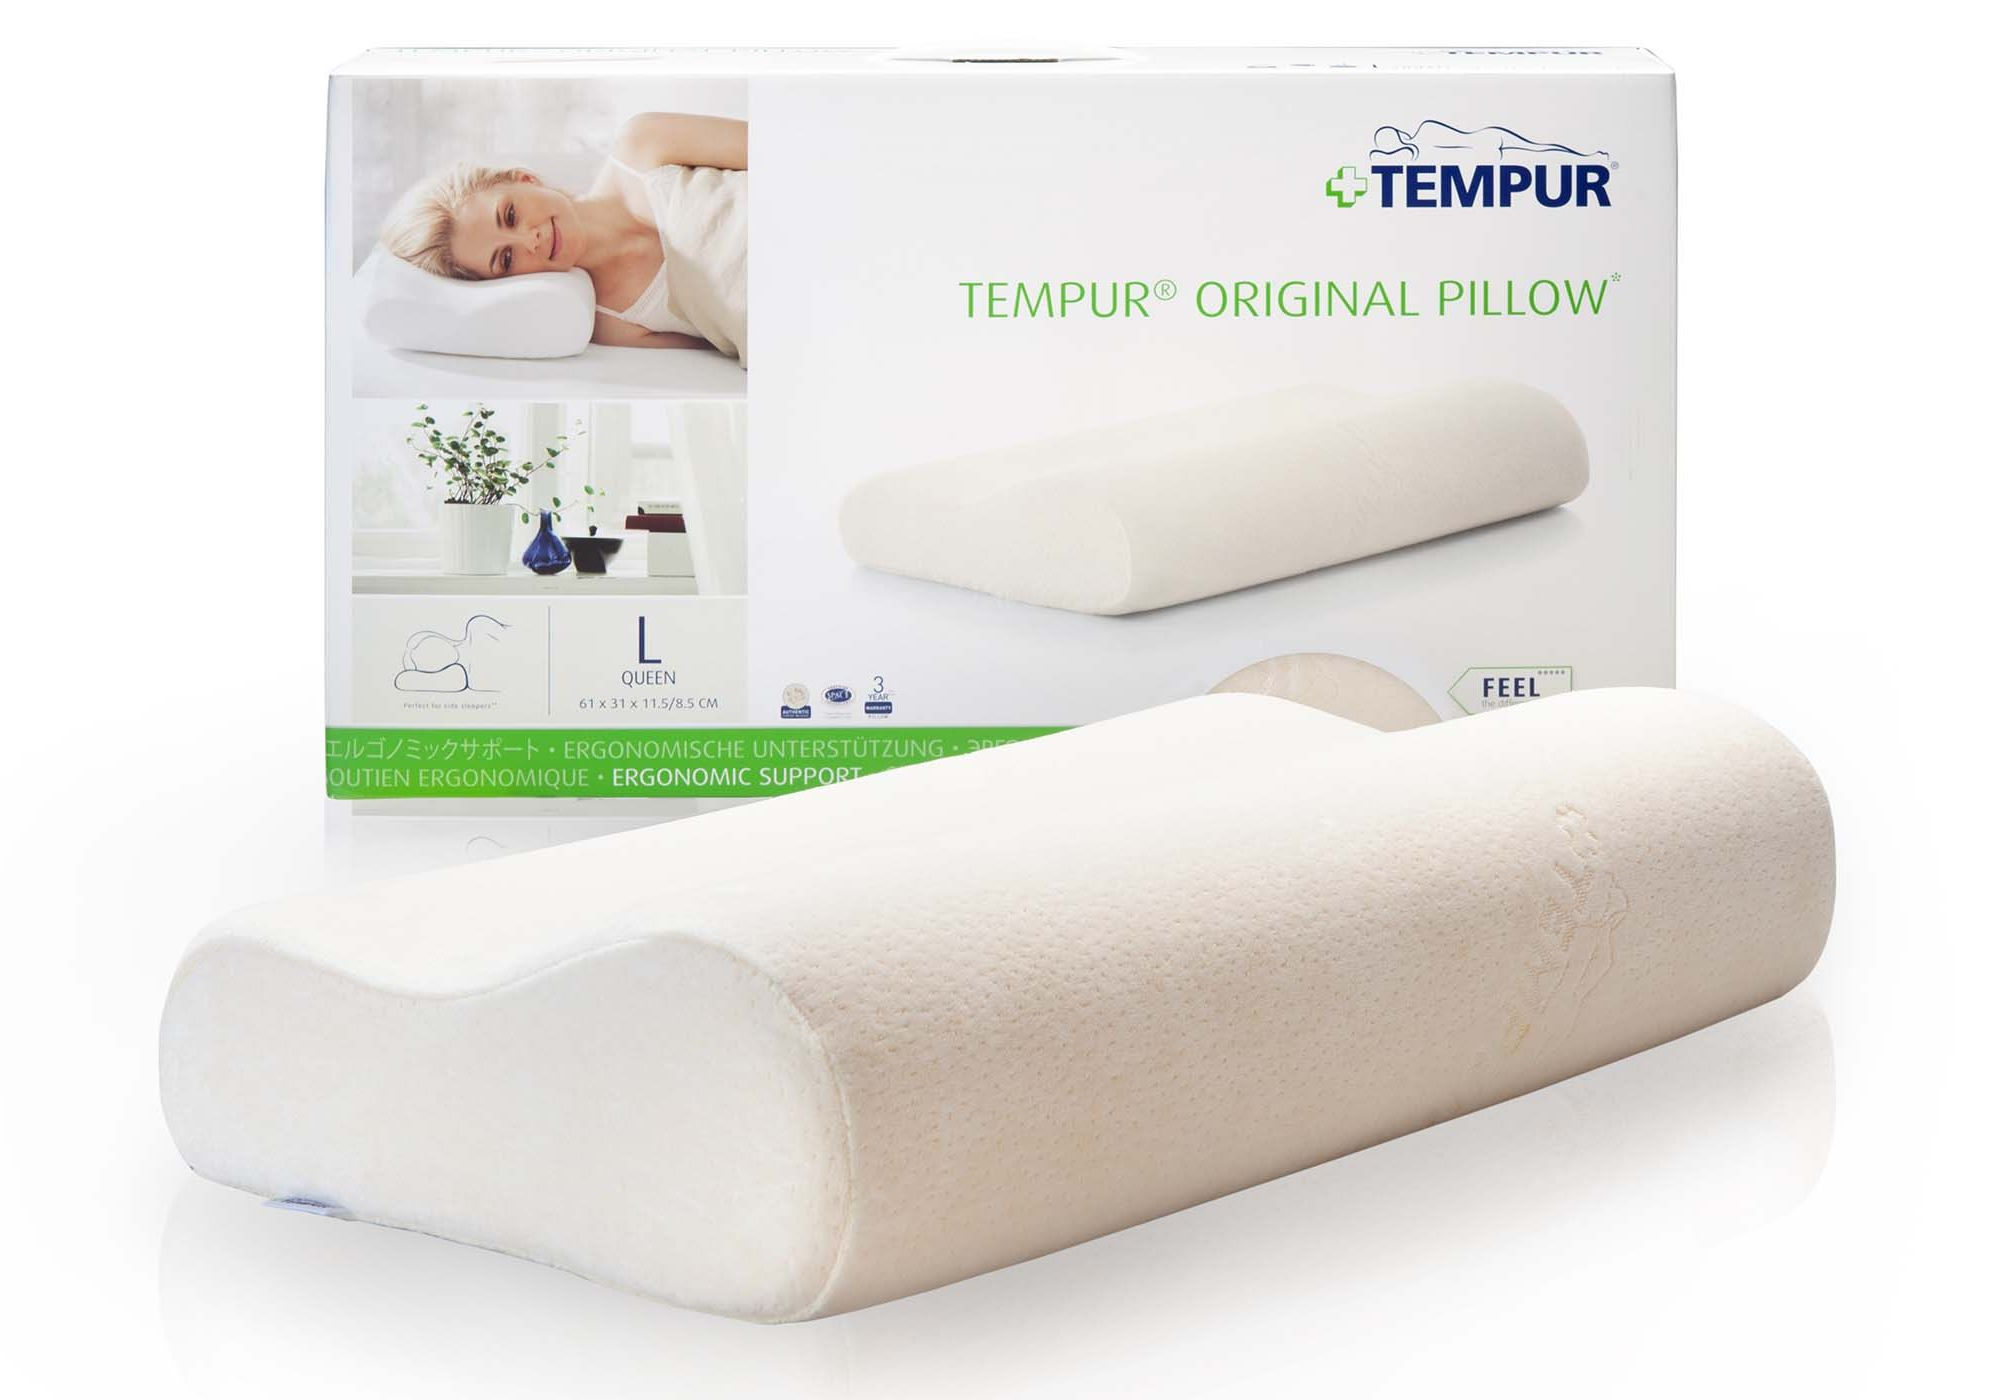 tempur neck pillow shop for cheap home textiles and save. Black Bedroom Furniture Sets. Home Design Ideas